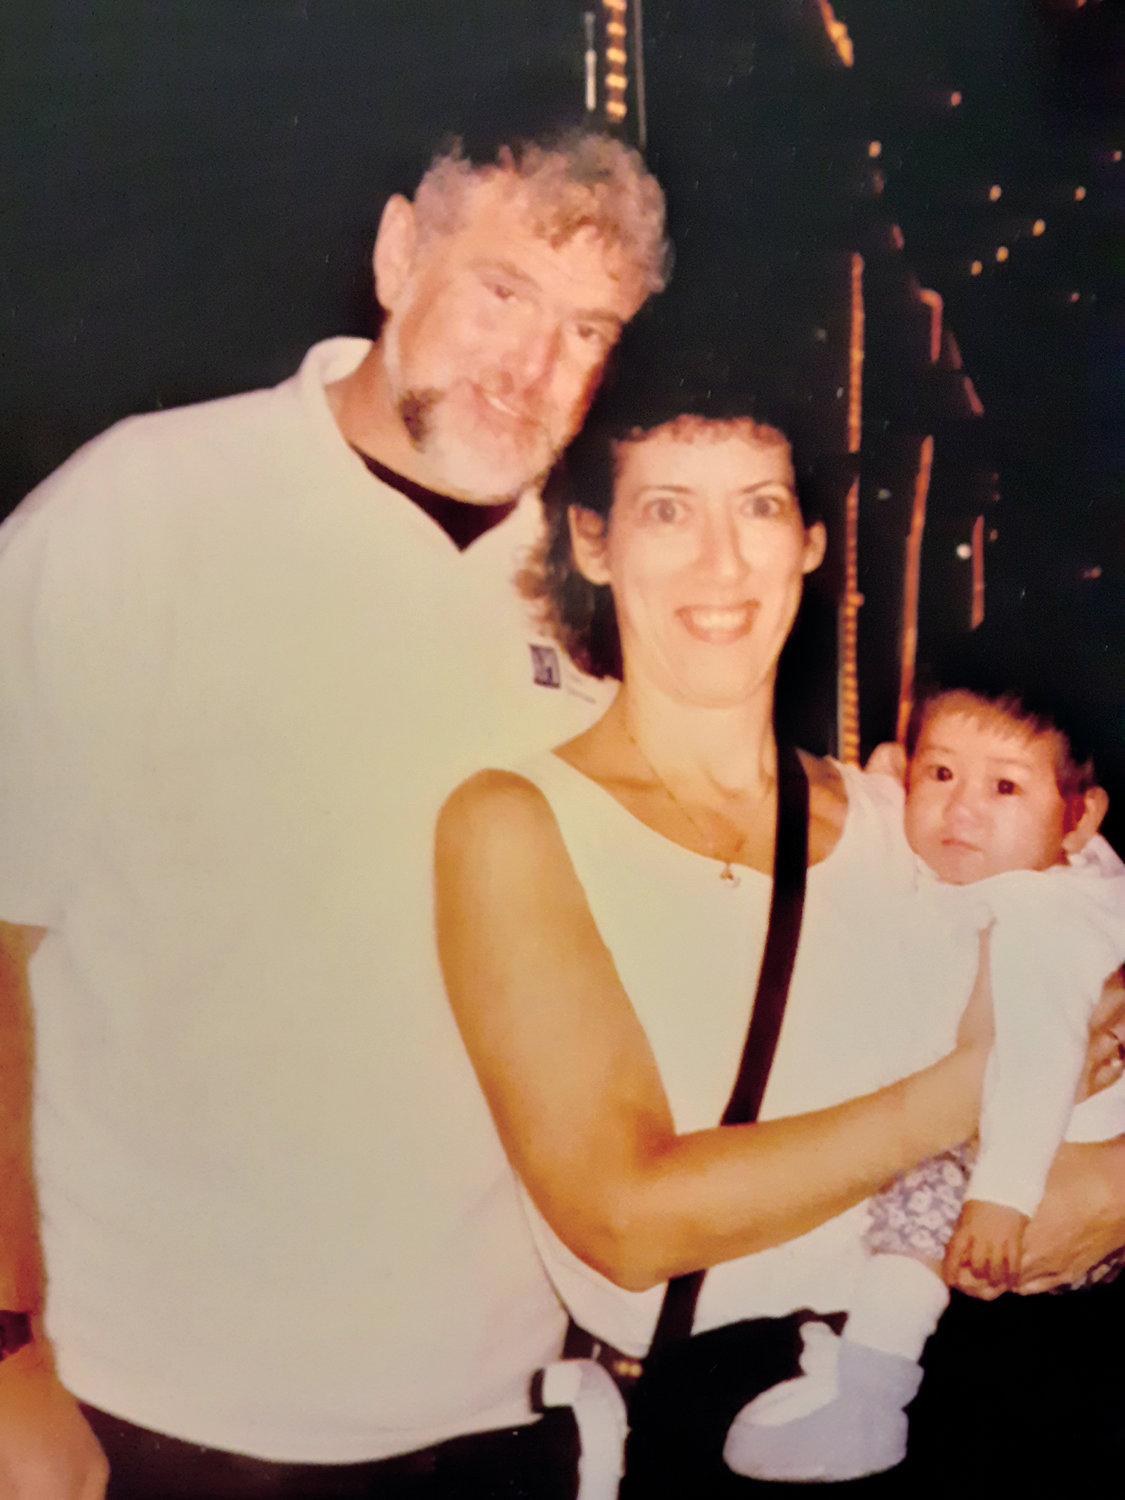 Larry Kessler and Lynne Cains with their then 15-month-old daughter Arianna Kessler during their 1997 trip to China, where they adopted her.